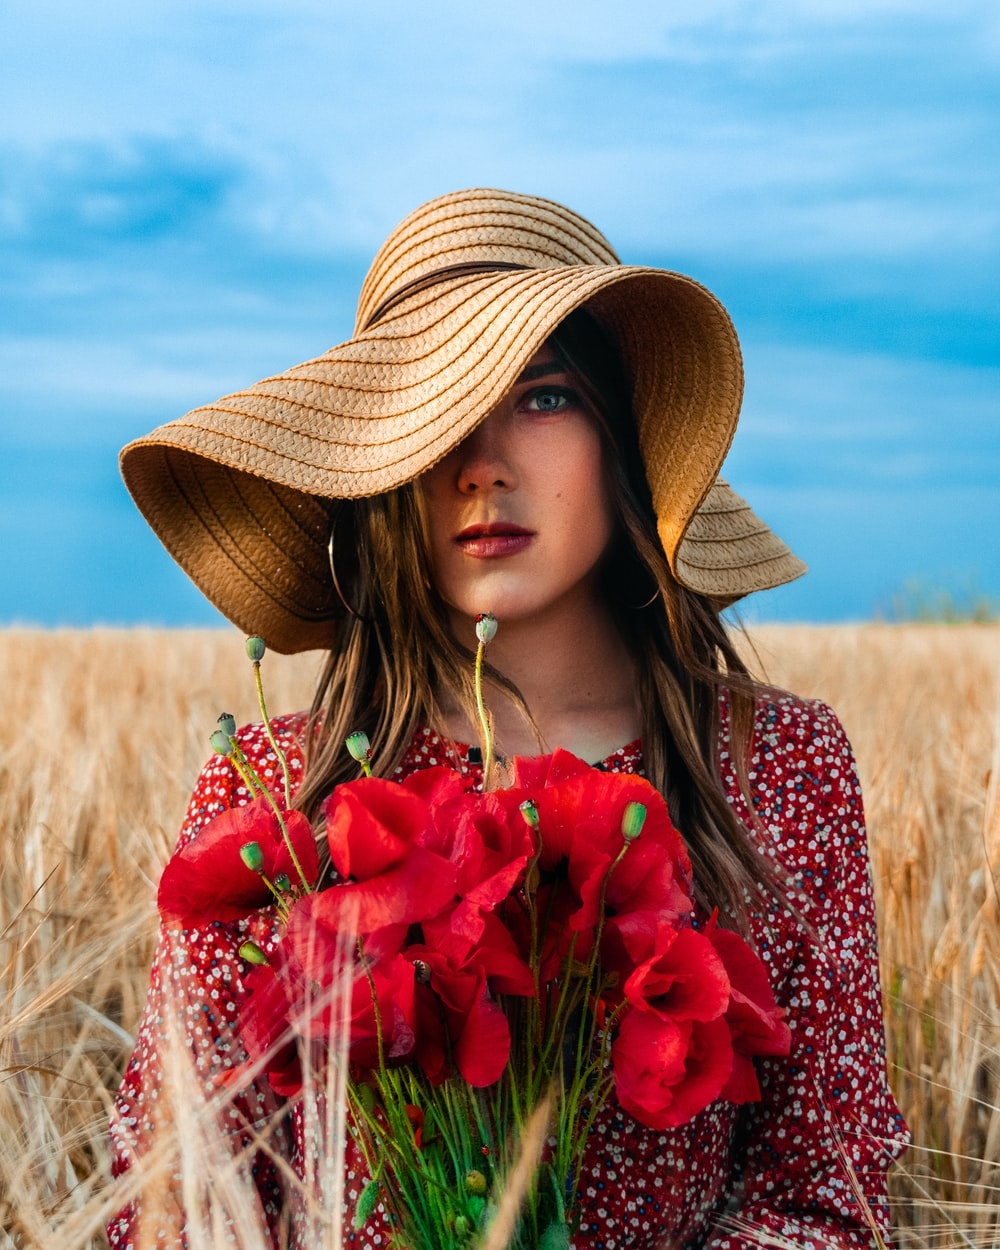 woman in brown straw hat holding red flowers